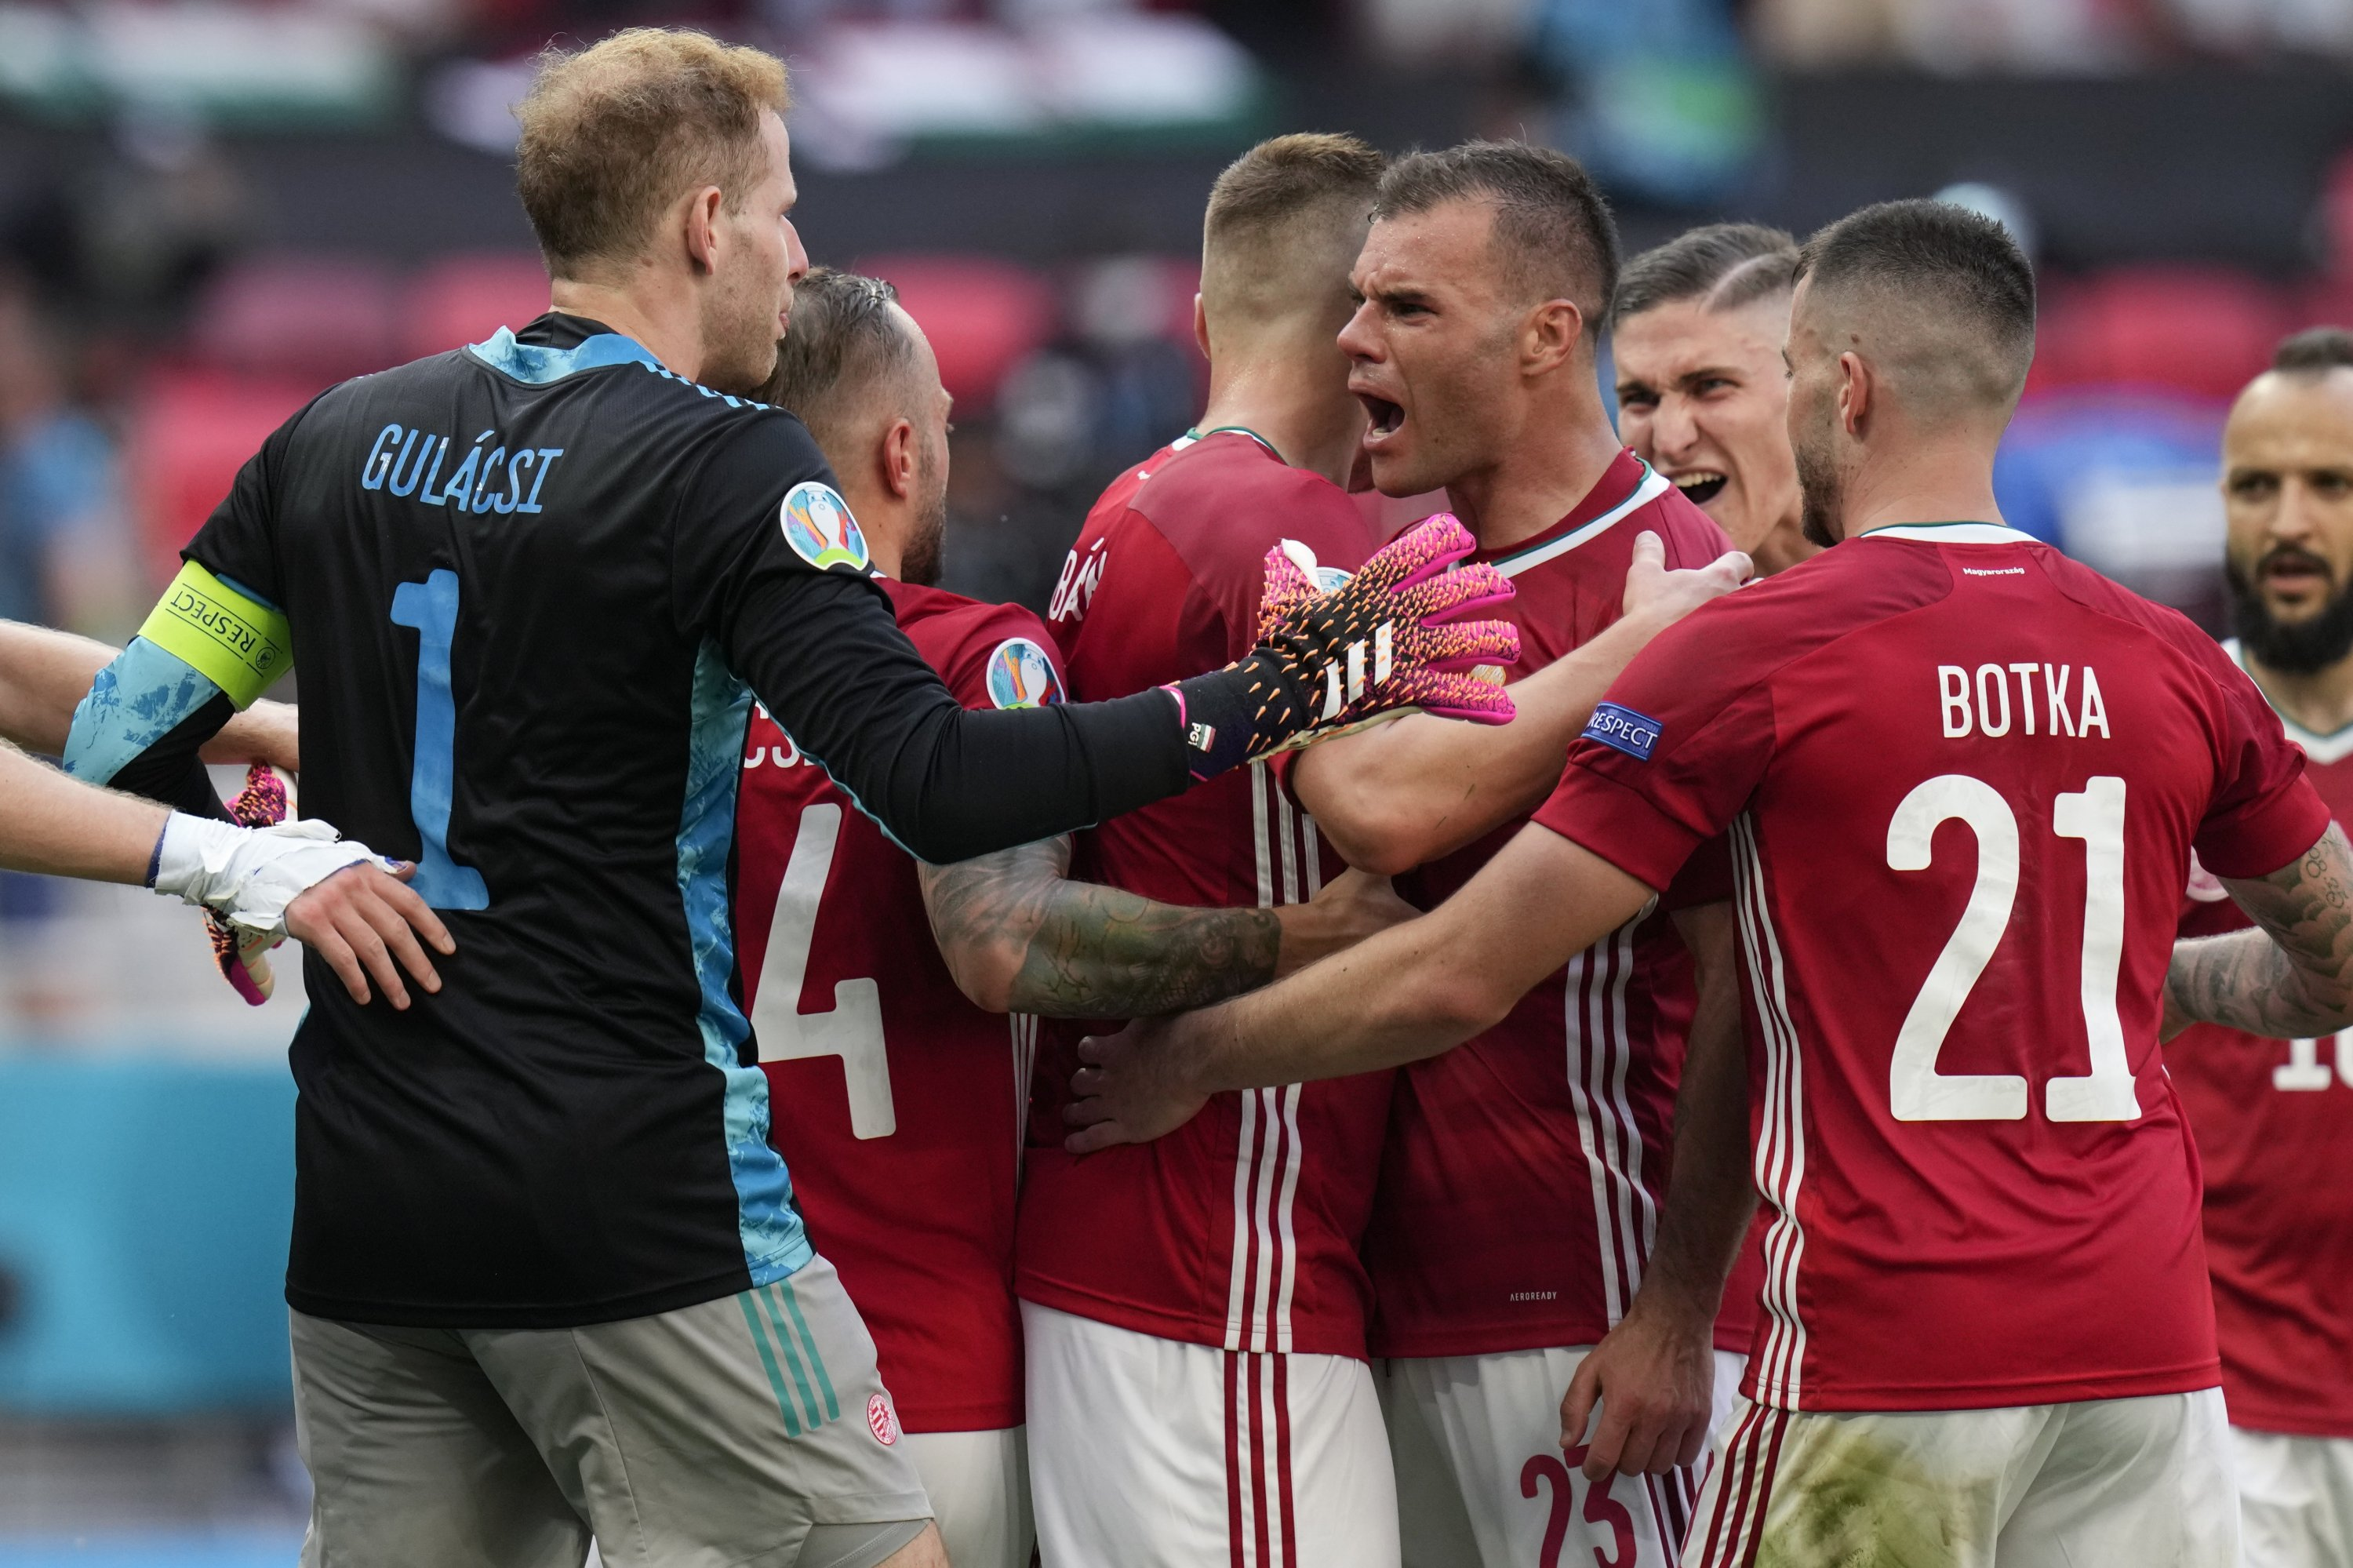 Hungary's players celebrate at the end of the Euro 2020 Group F match against France, at the Ferenc Puskas stadium in Budapest, Saturday, June 19, 2021. The match ended in a 1-1 draw. (AP Photo / Darko Bandic, Pool)